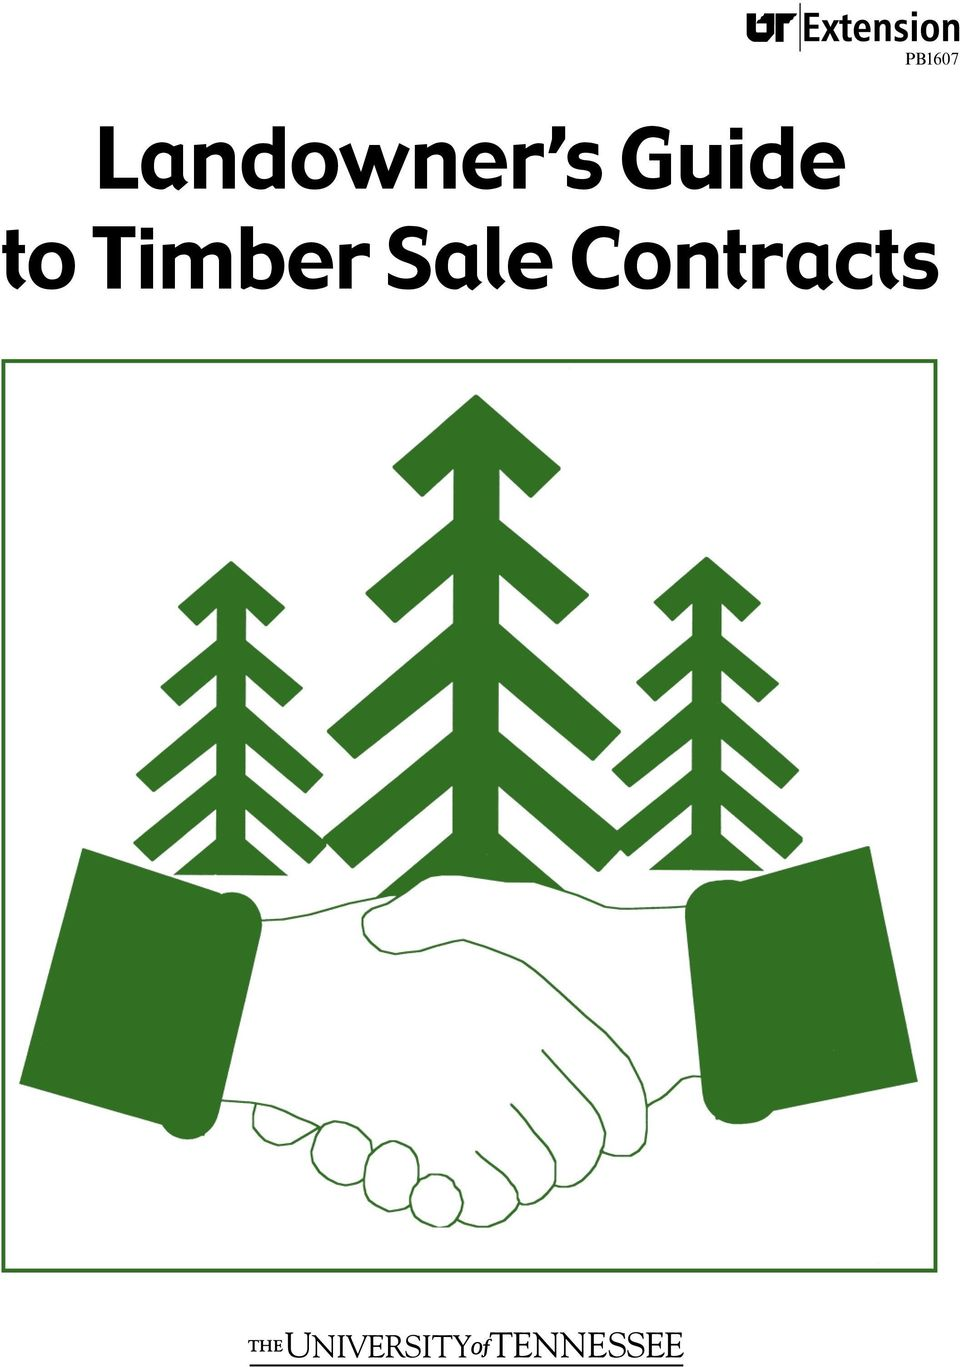 PB1607  Landowner s Guide to Timber Sale Contracts - PDF